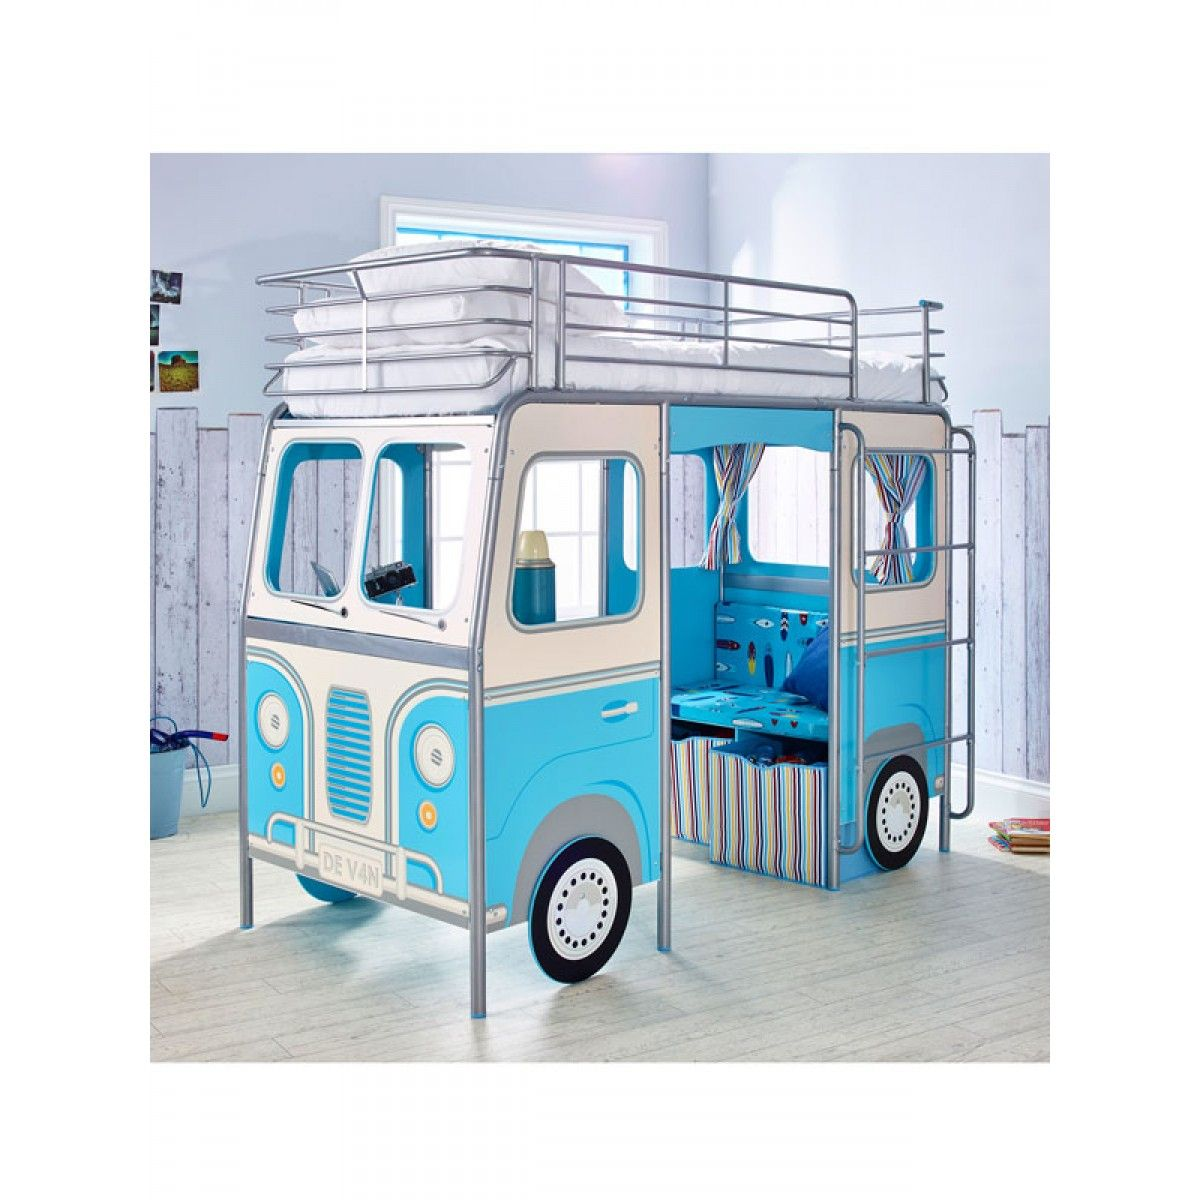 A fun Camper Van design cabin bed Part of the HelloHome